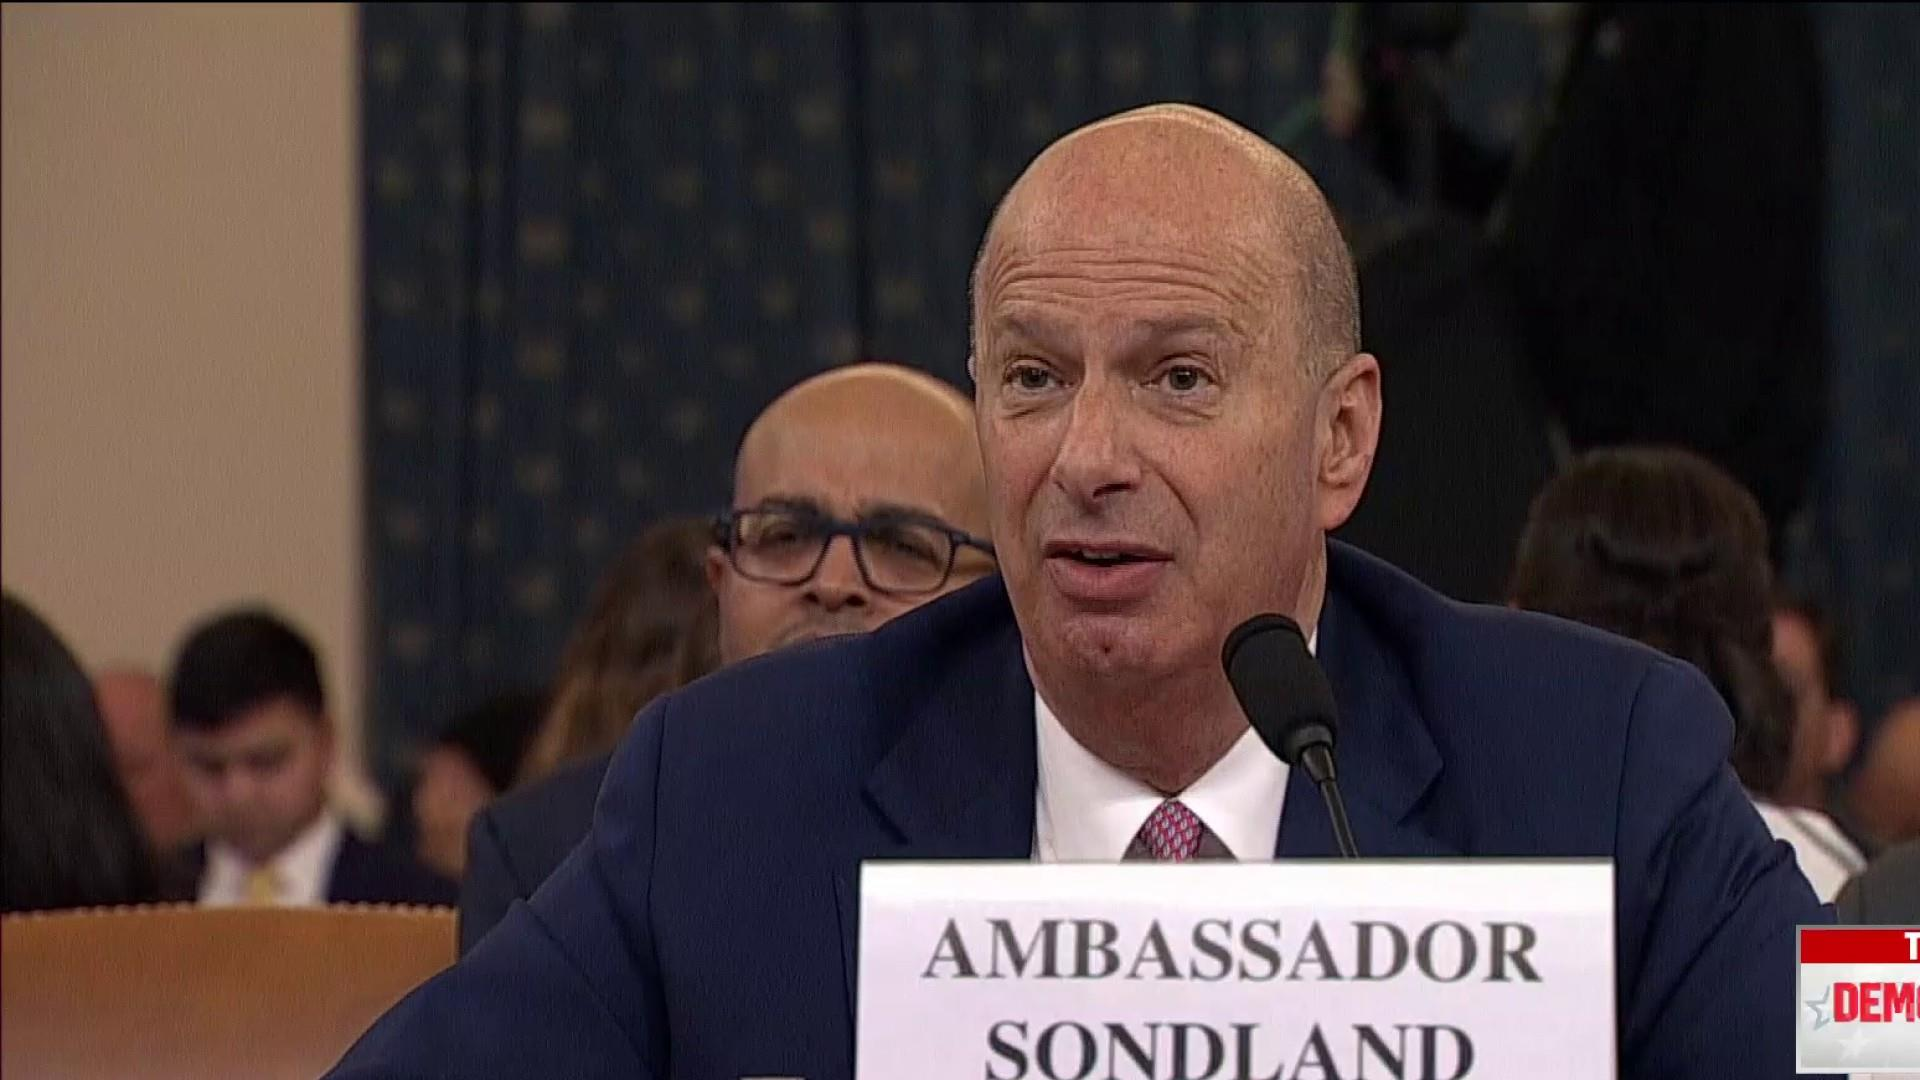 Sondland testimony targets Trump, Pompeo and confirms deal with Ukraine